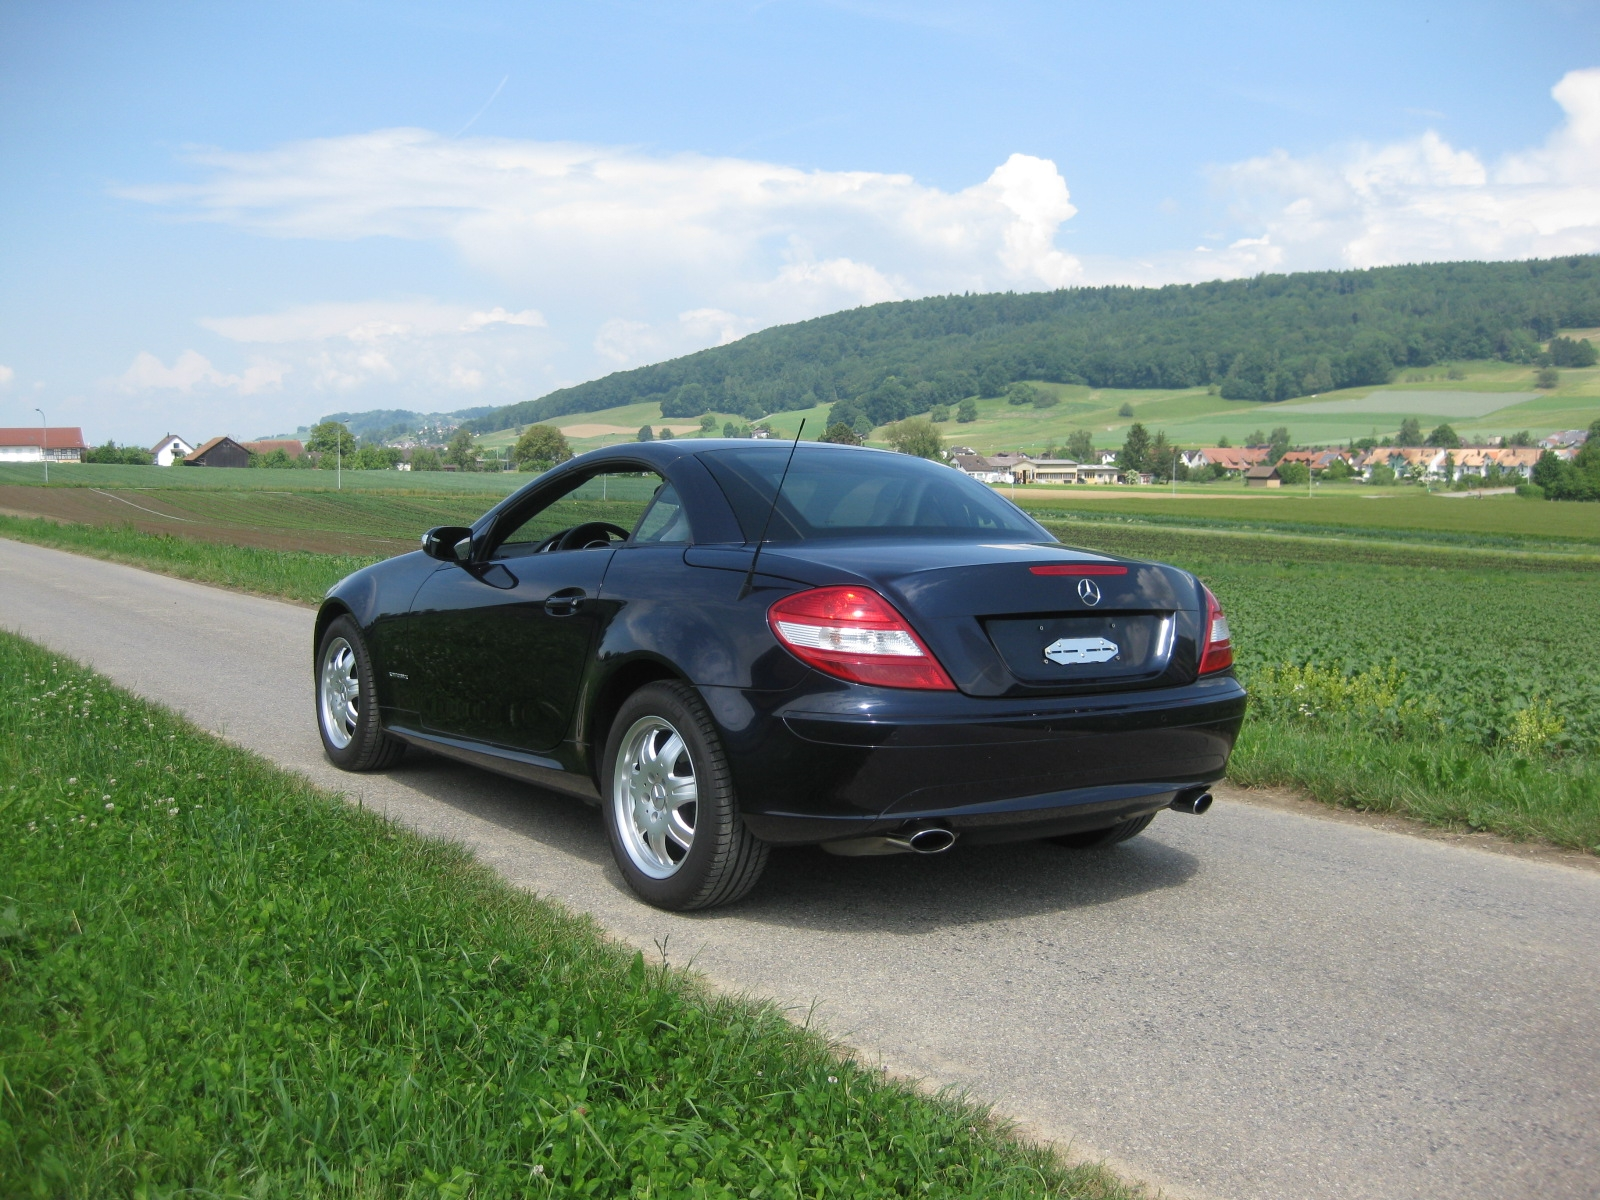 touring garage ag mercedes benz slk 200 kompressor cabriolet 2004. Black Bedroom Furniture Sets. Home Design Ideas